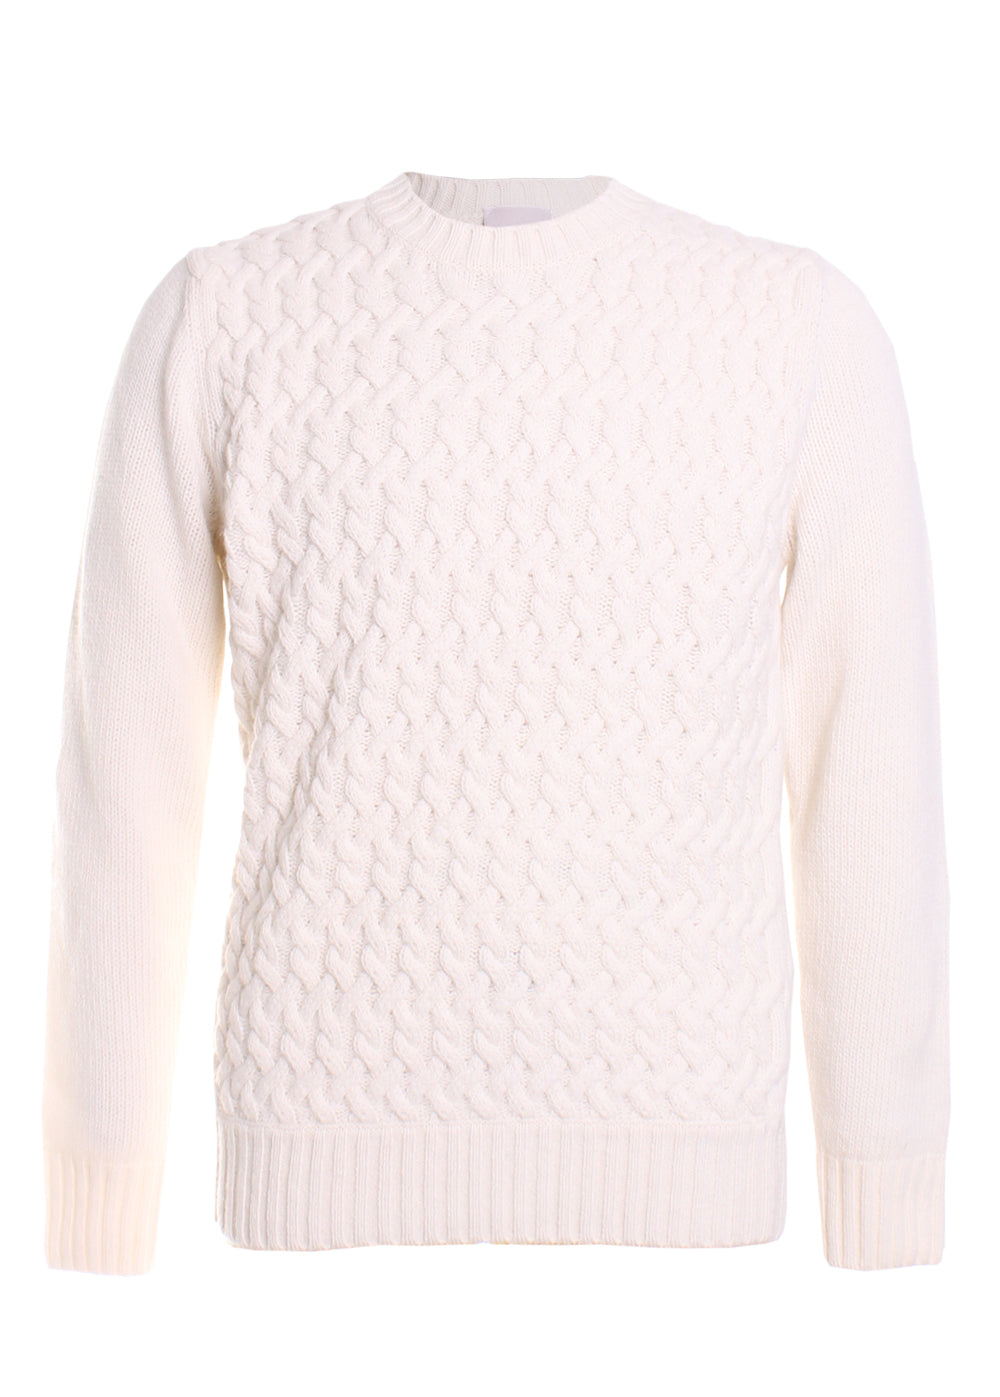 Eleventy Big Cable Sweater in Ivory